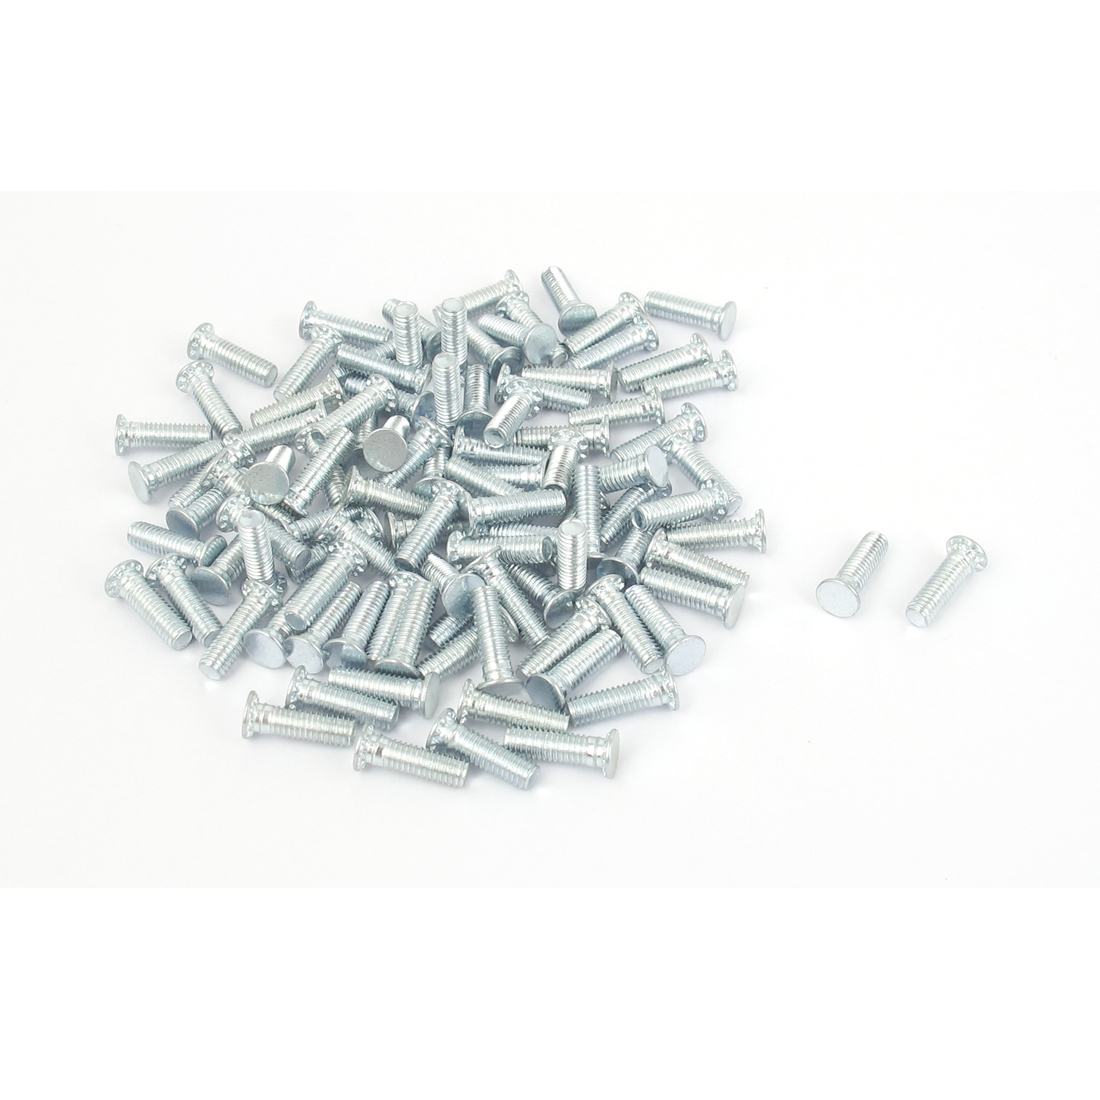 M3x10mm Zinc Plated Flush Head Self Clinching Threaded Studs Fastener 100pcs